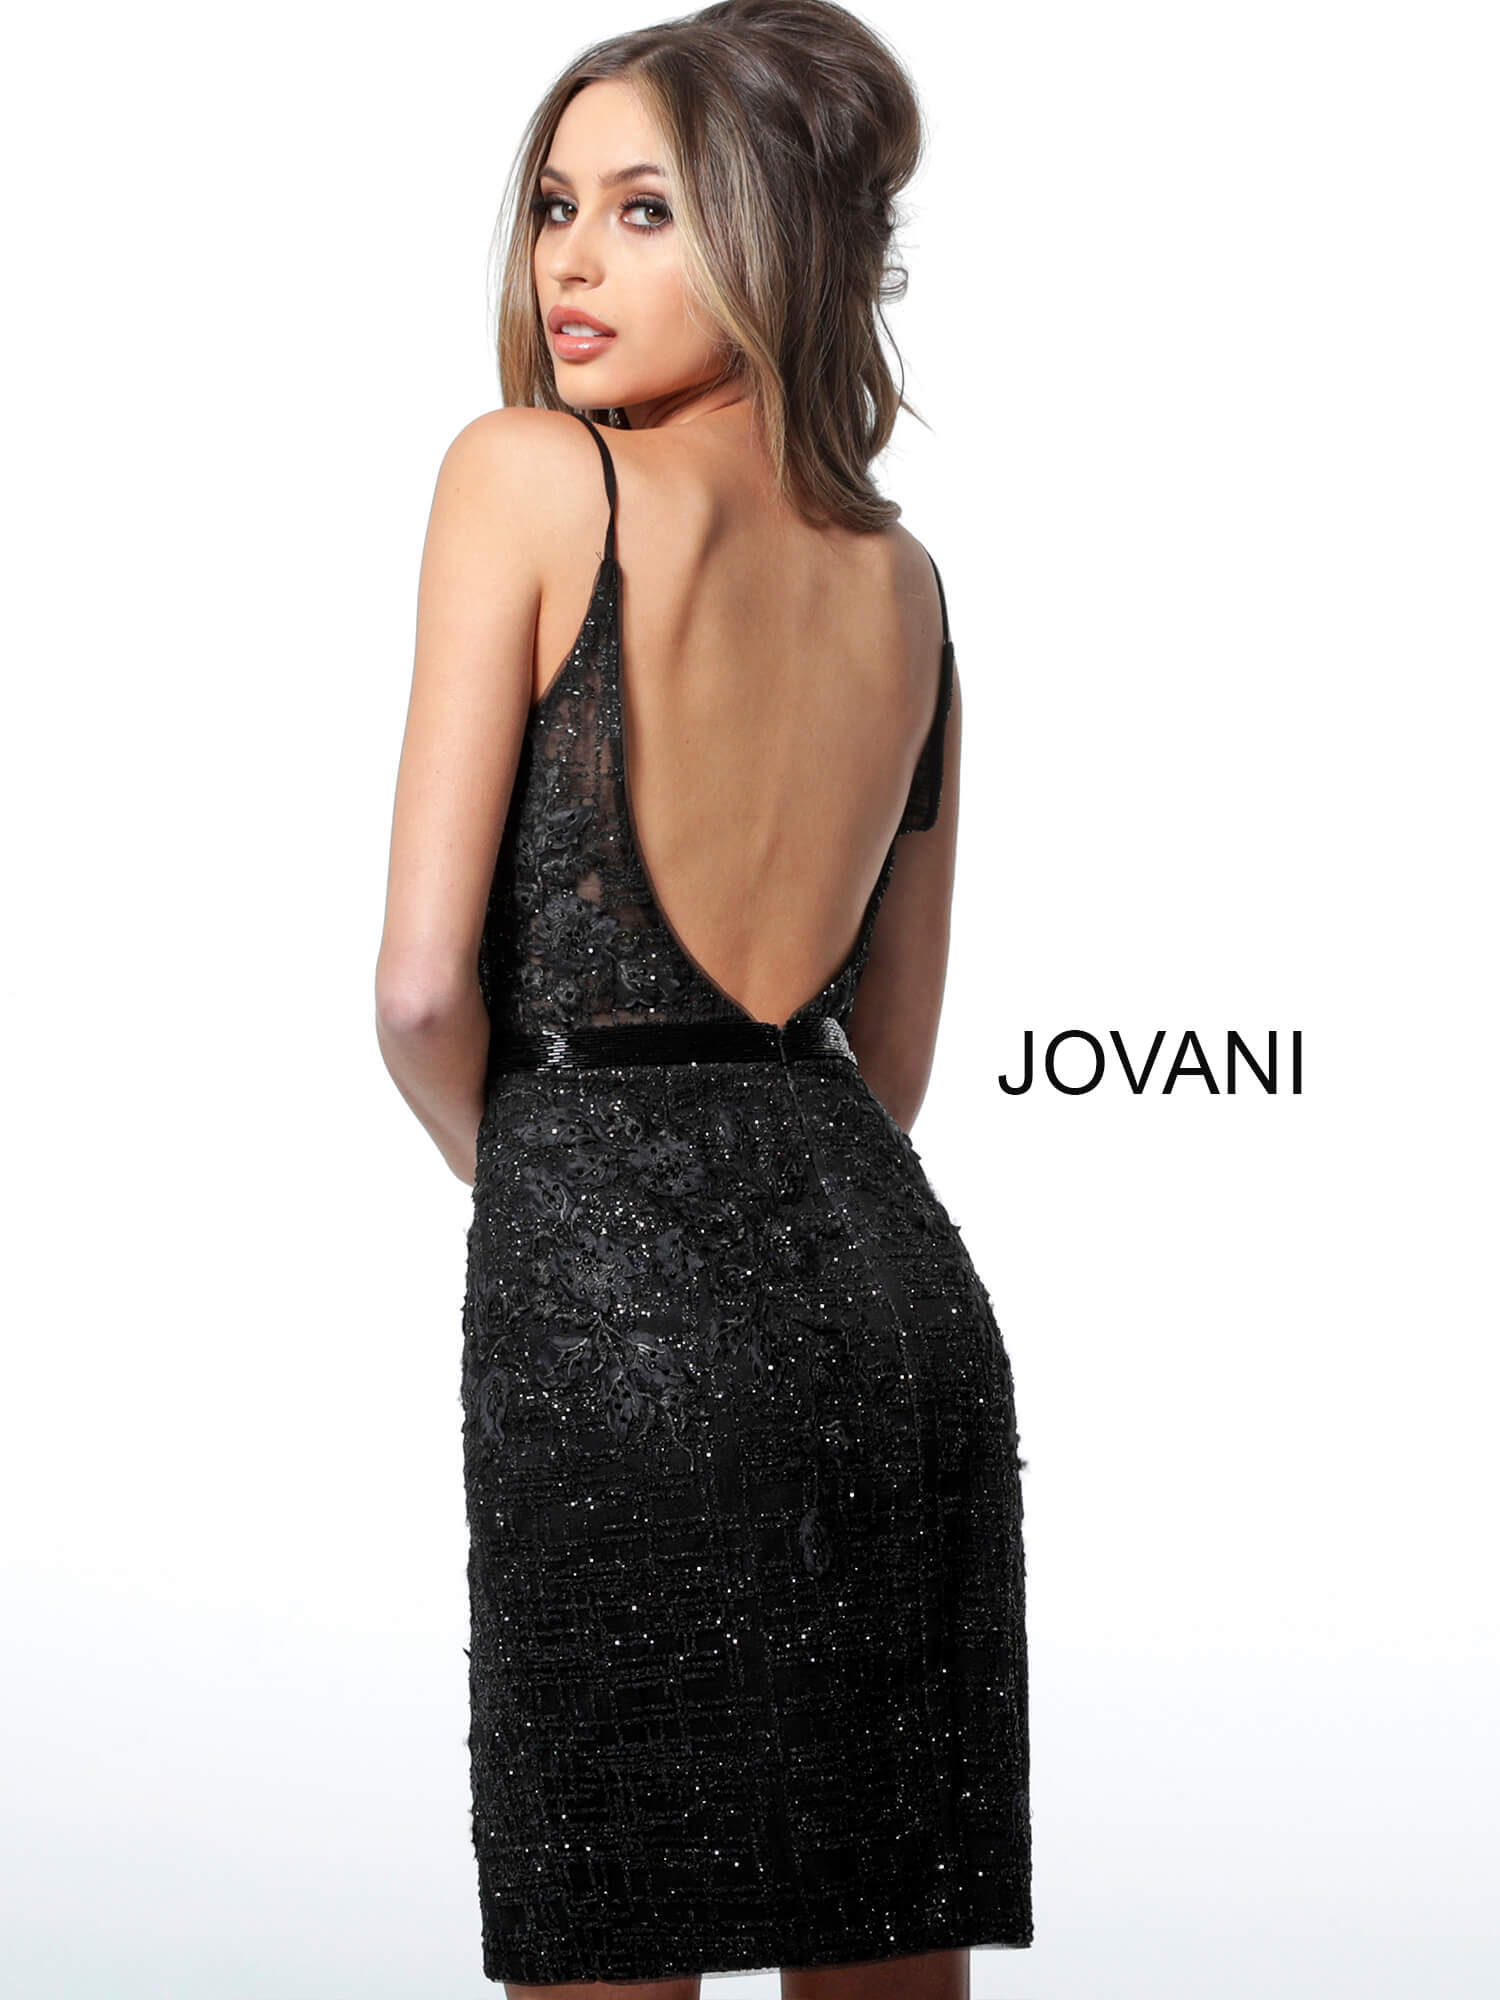 Jovani embellished lace fitted cocktail dress 1106 on mobile 0